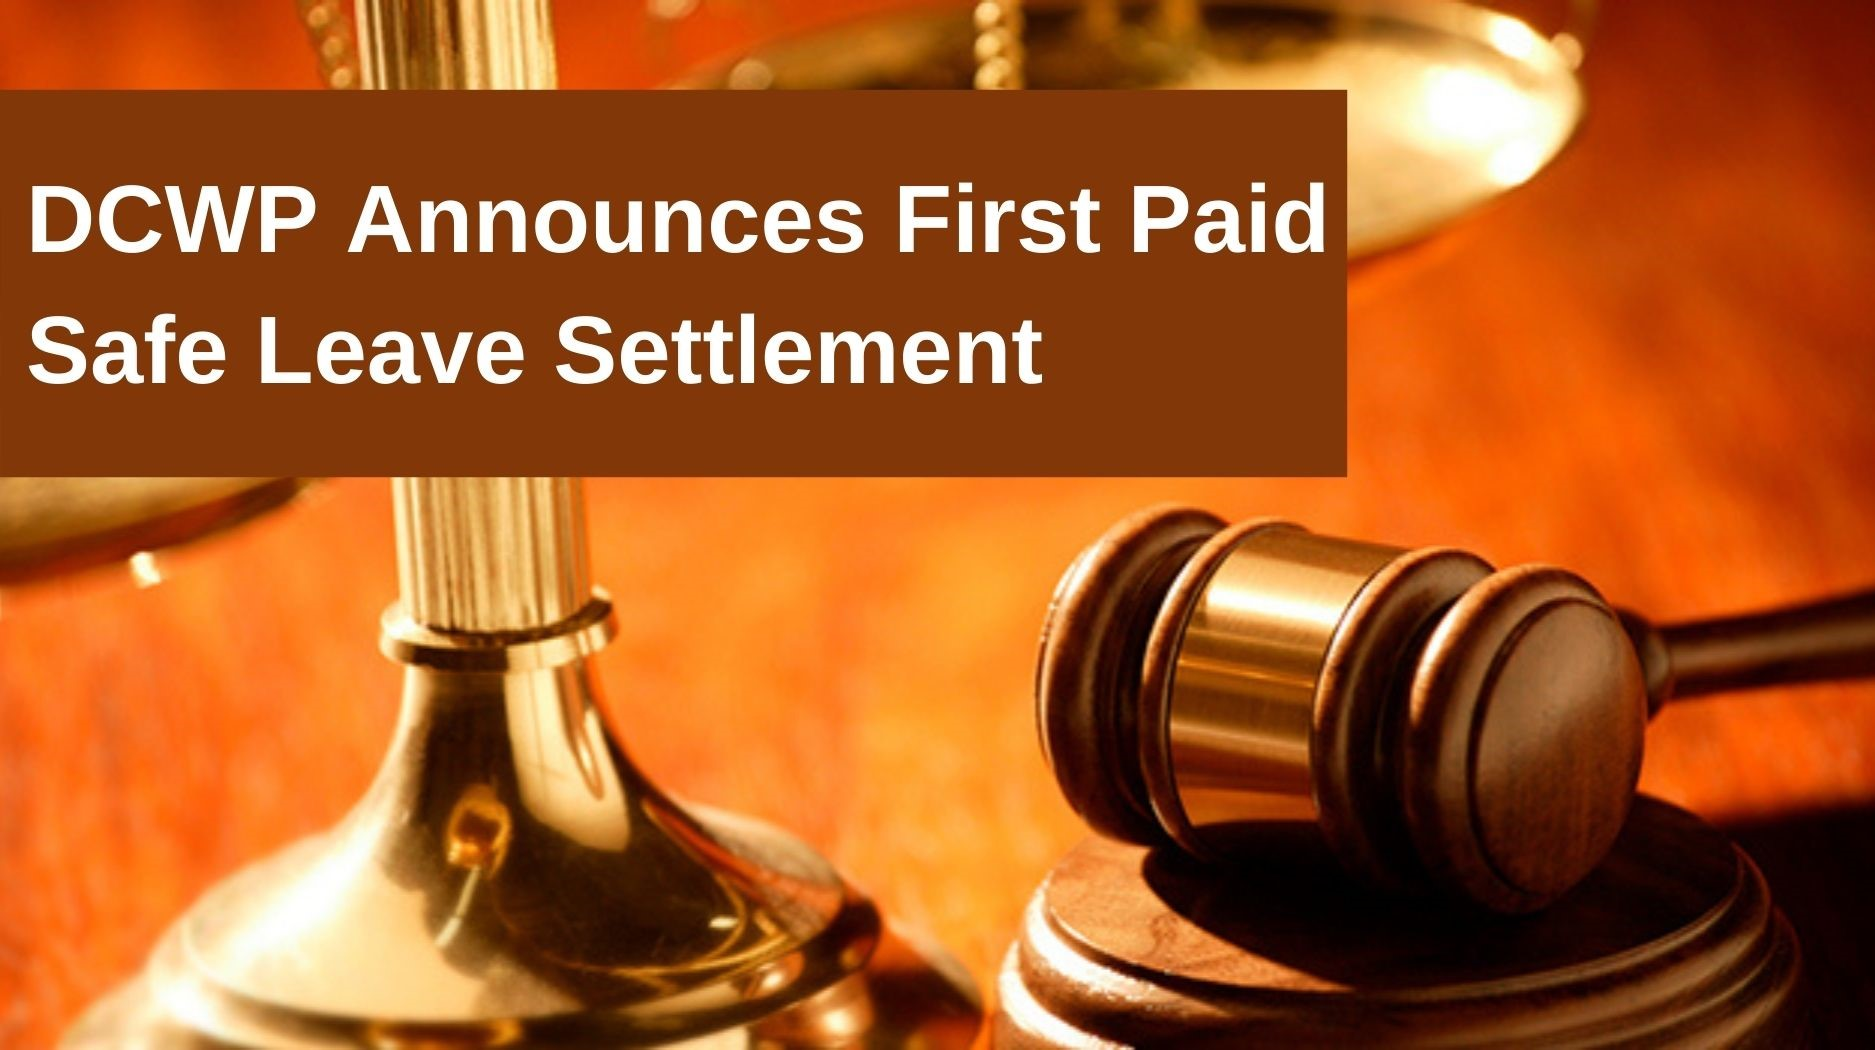 Photo of gavel with text overlay DCWP Announces First Paid Safe Leave Settlement